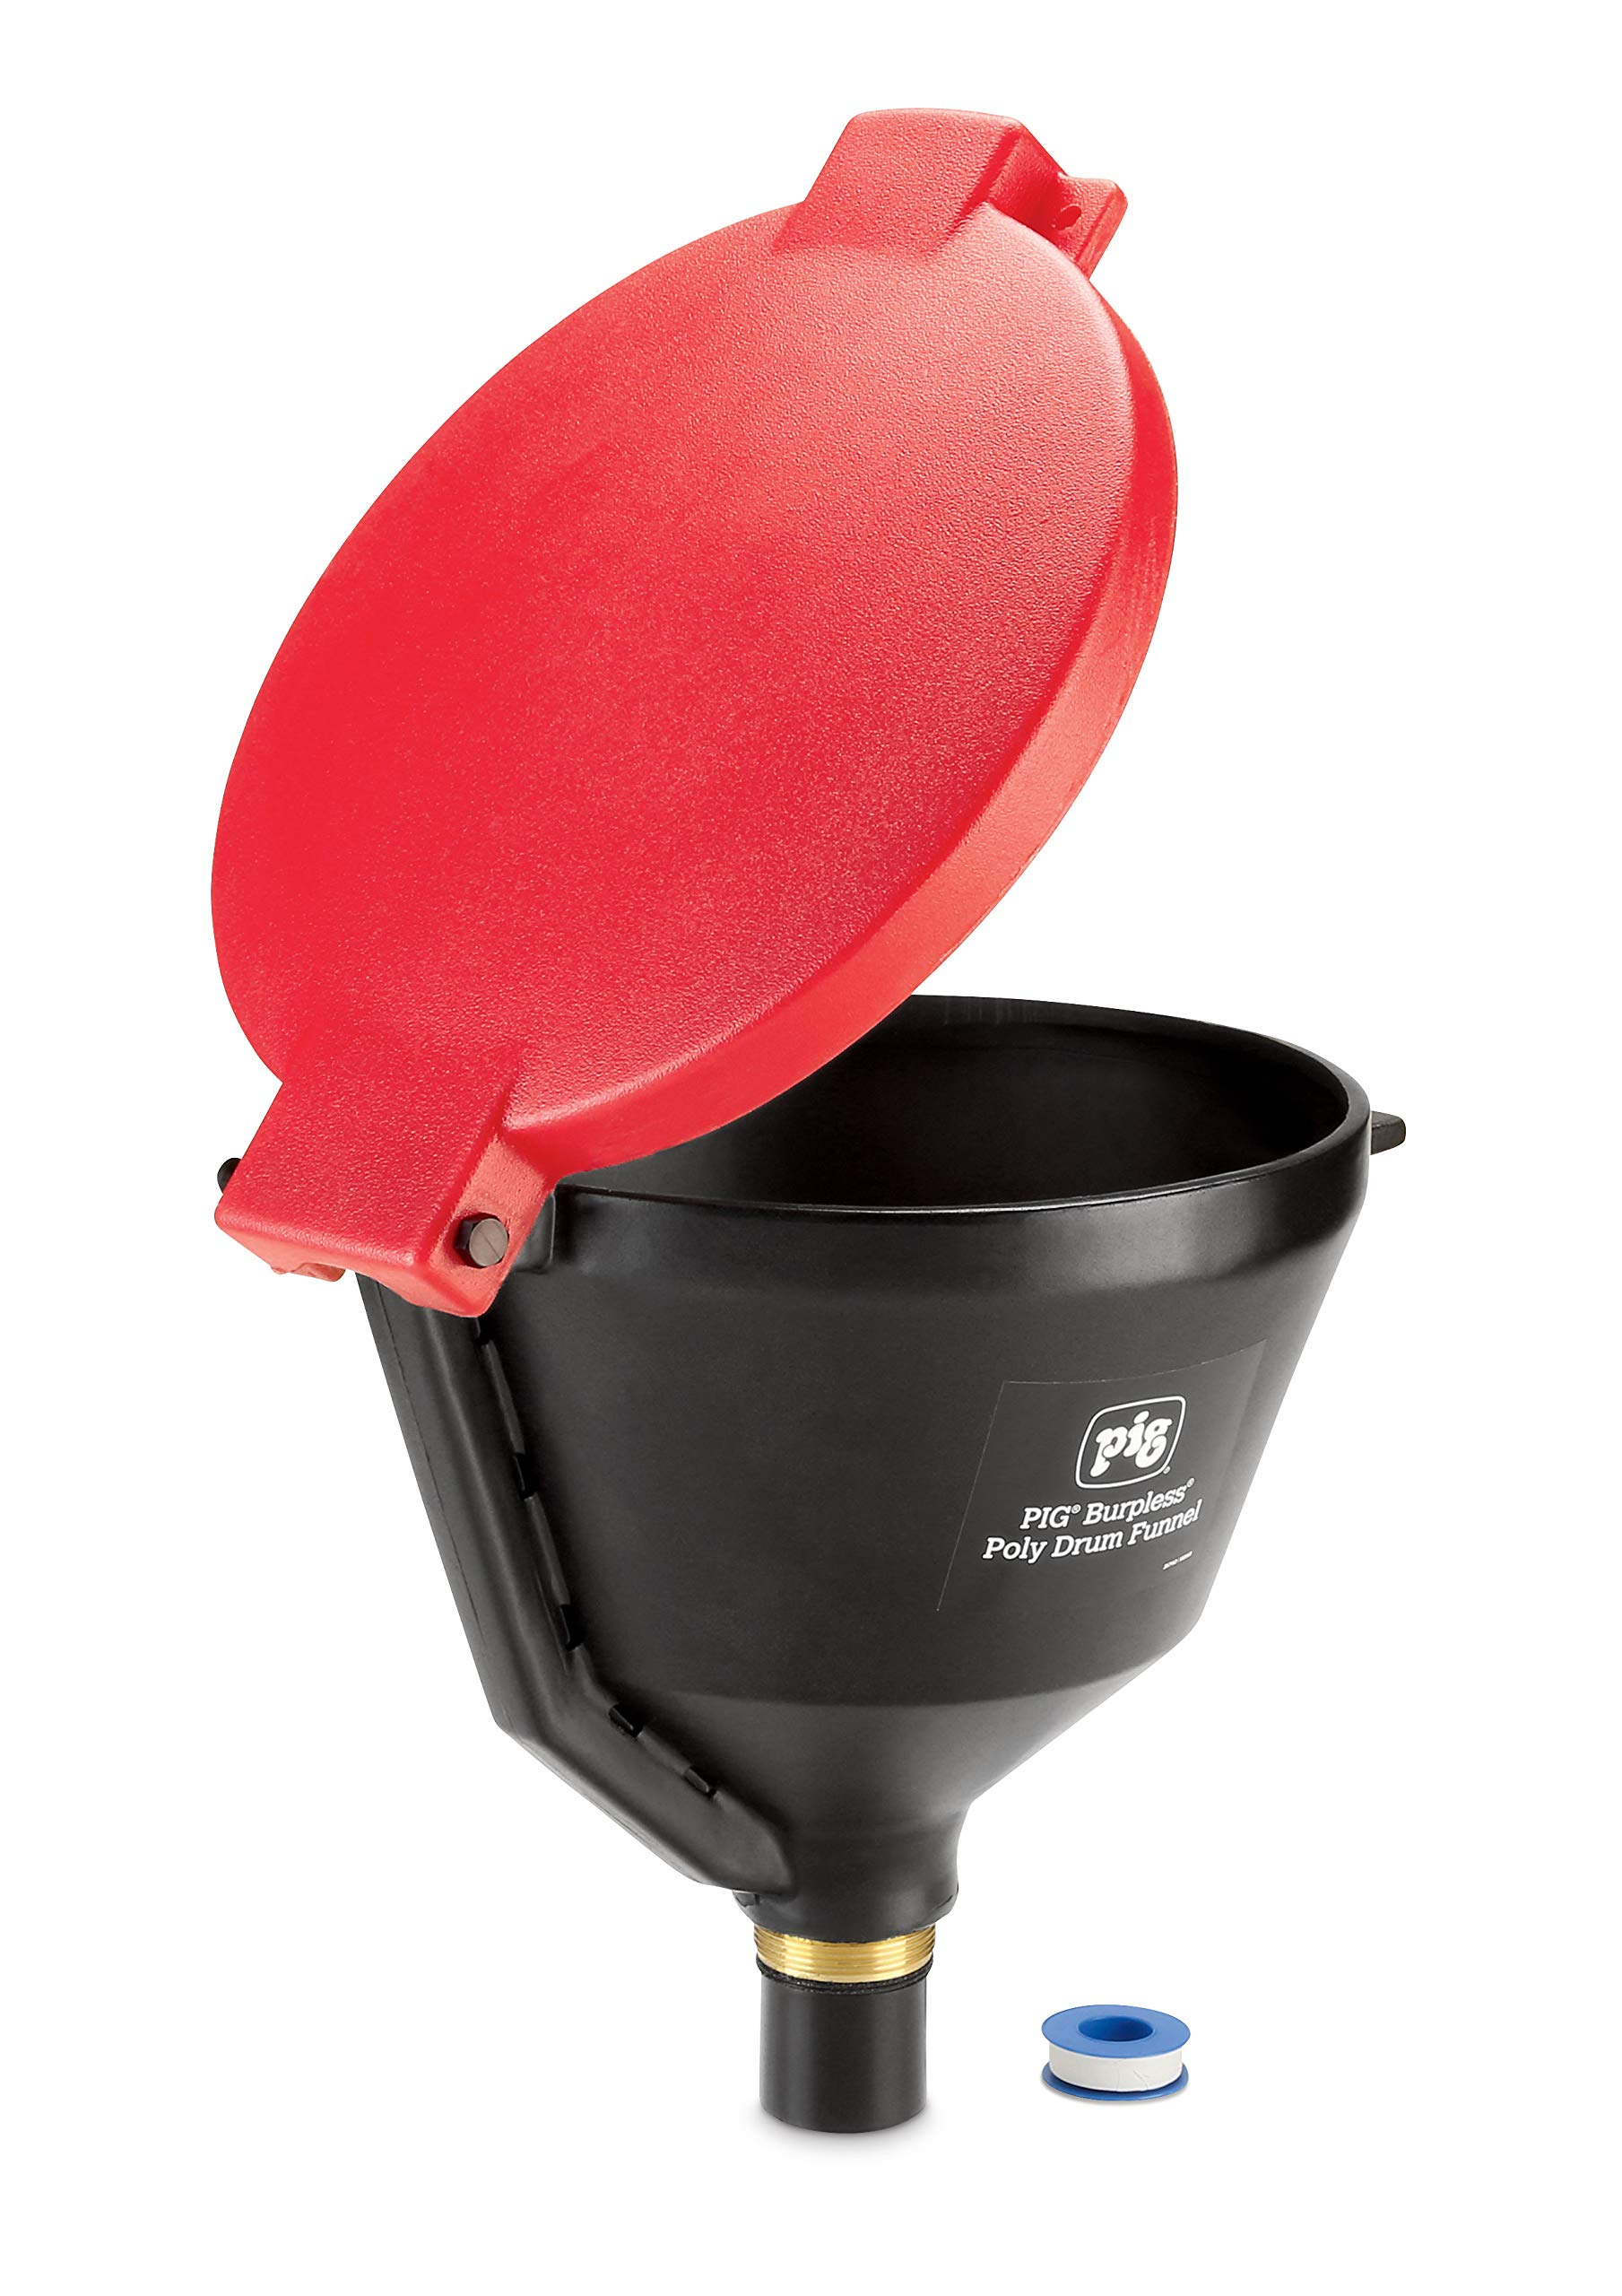 New Pig Burpless Poly Drum Funnel for Plastic & Steel Drums